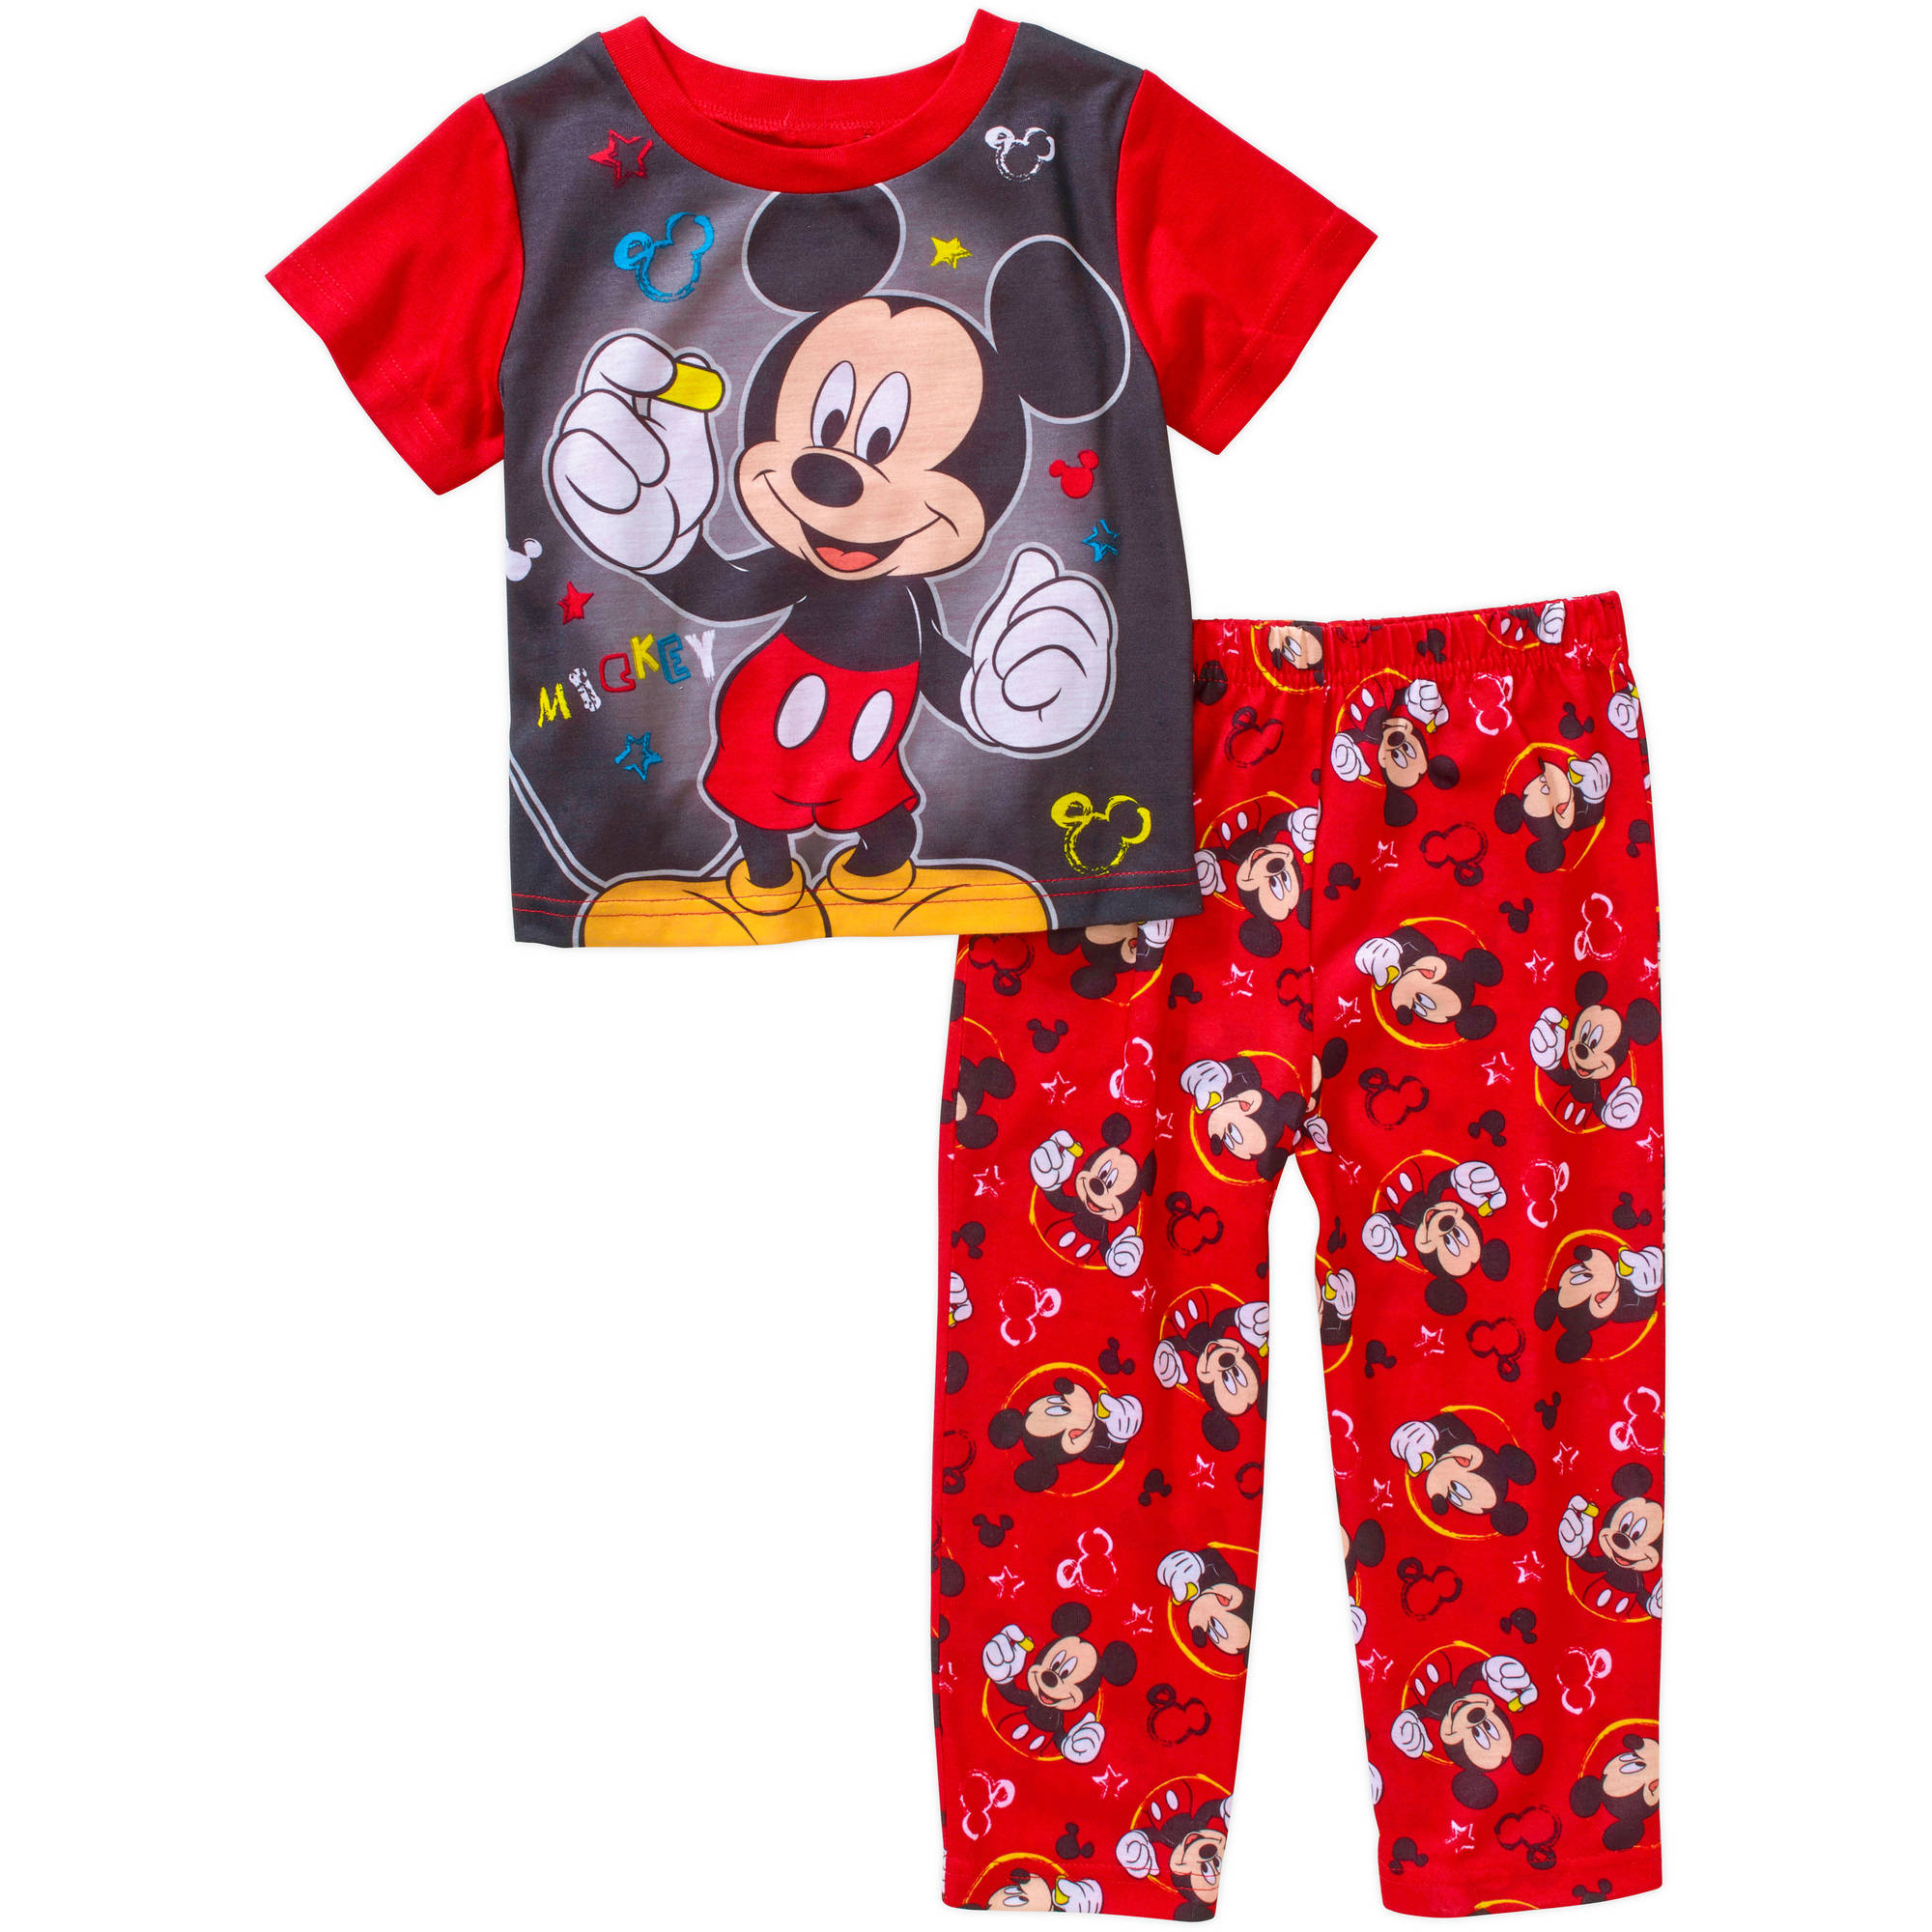 Mickey Mouse Toddler Boy Short Sleeve Pajama Sleepwear Set